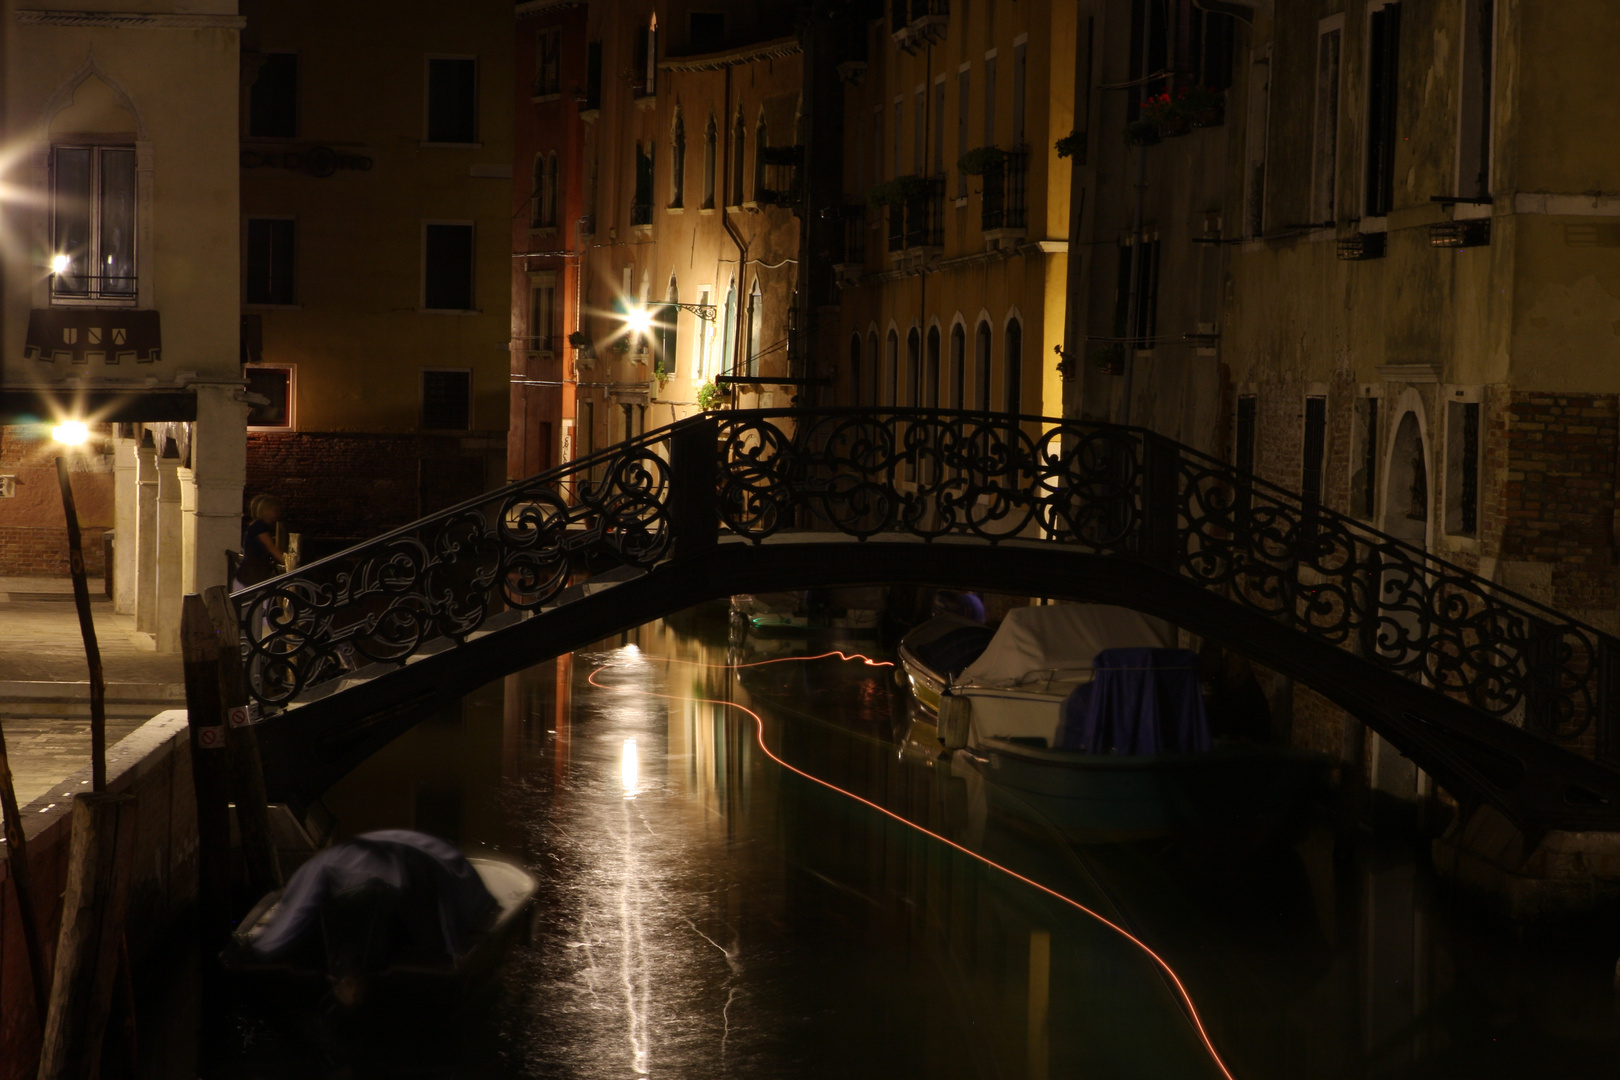 Venice canal in the night 2.